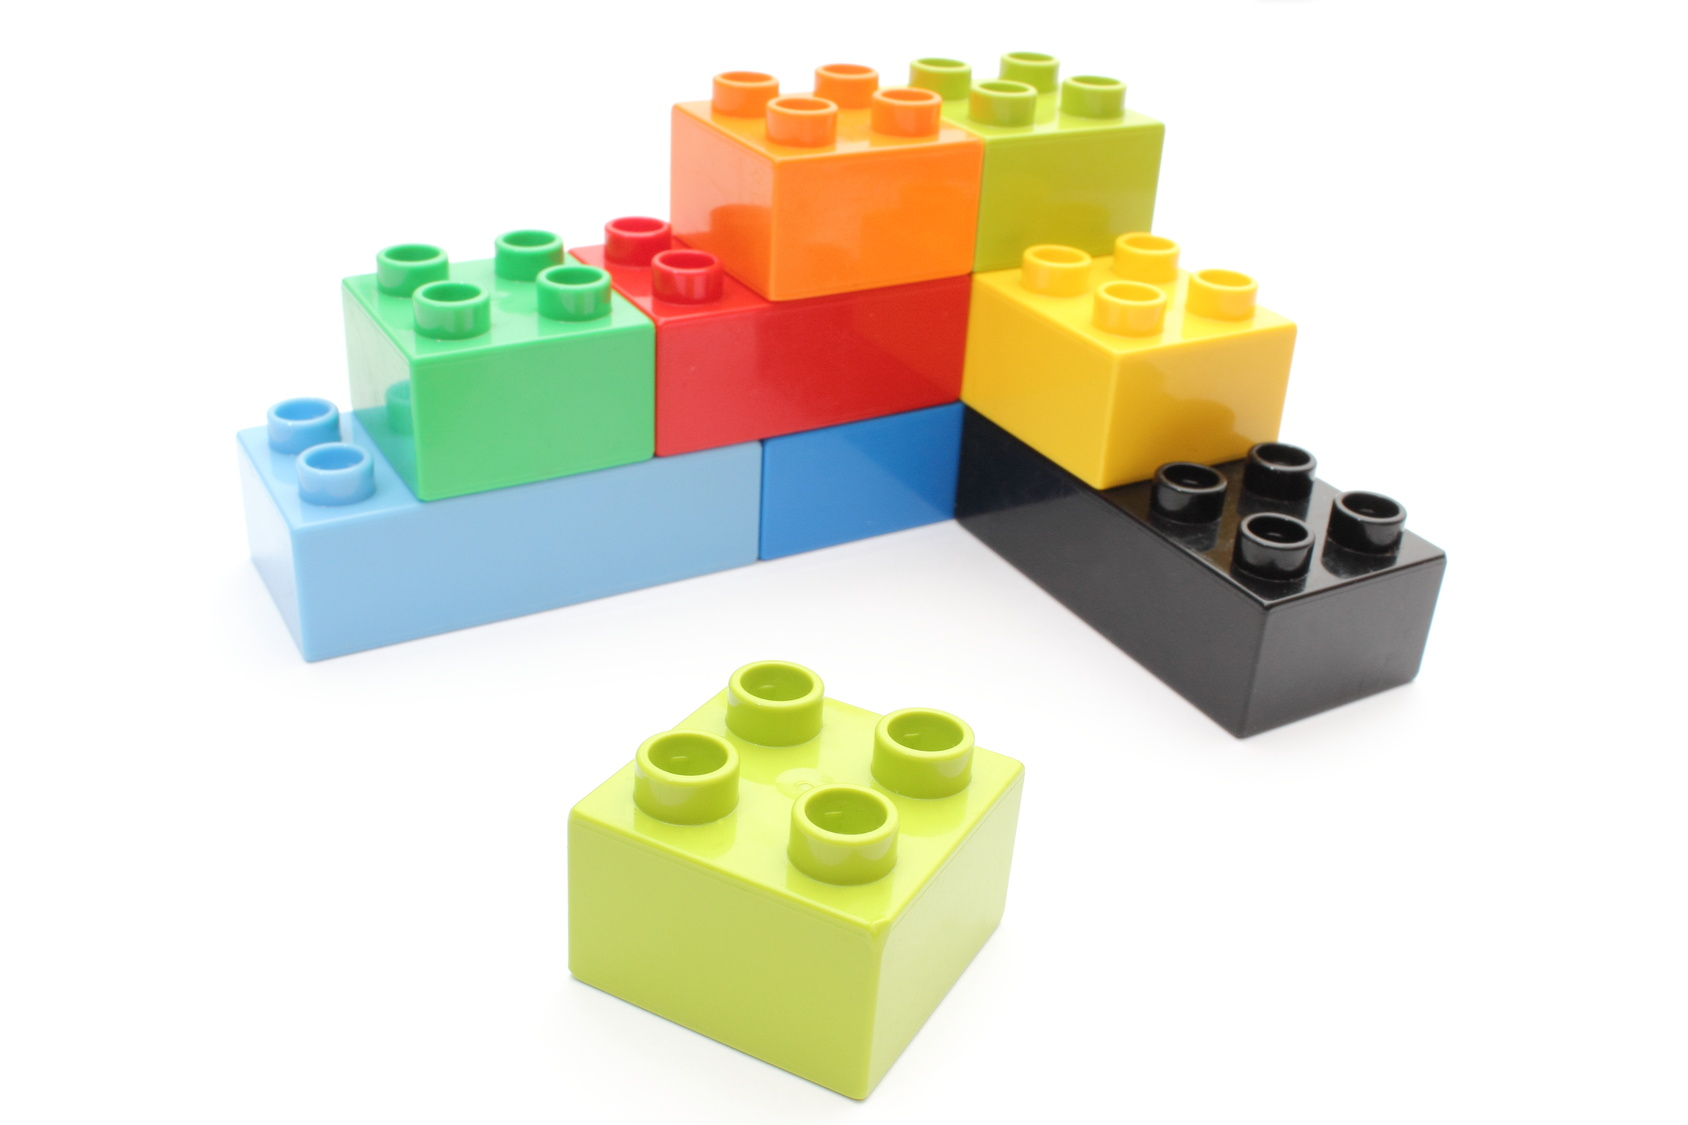 Assembling lego blocks